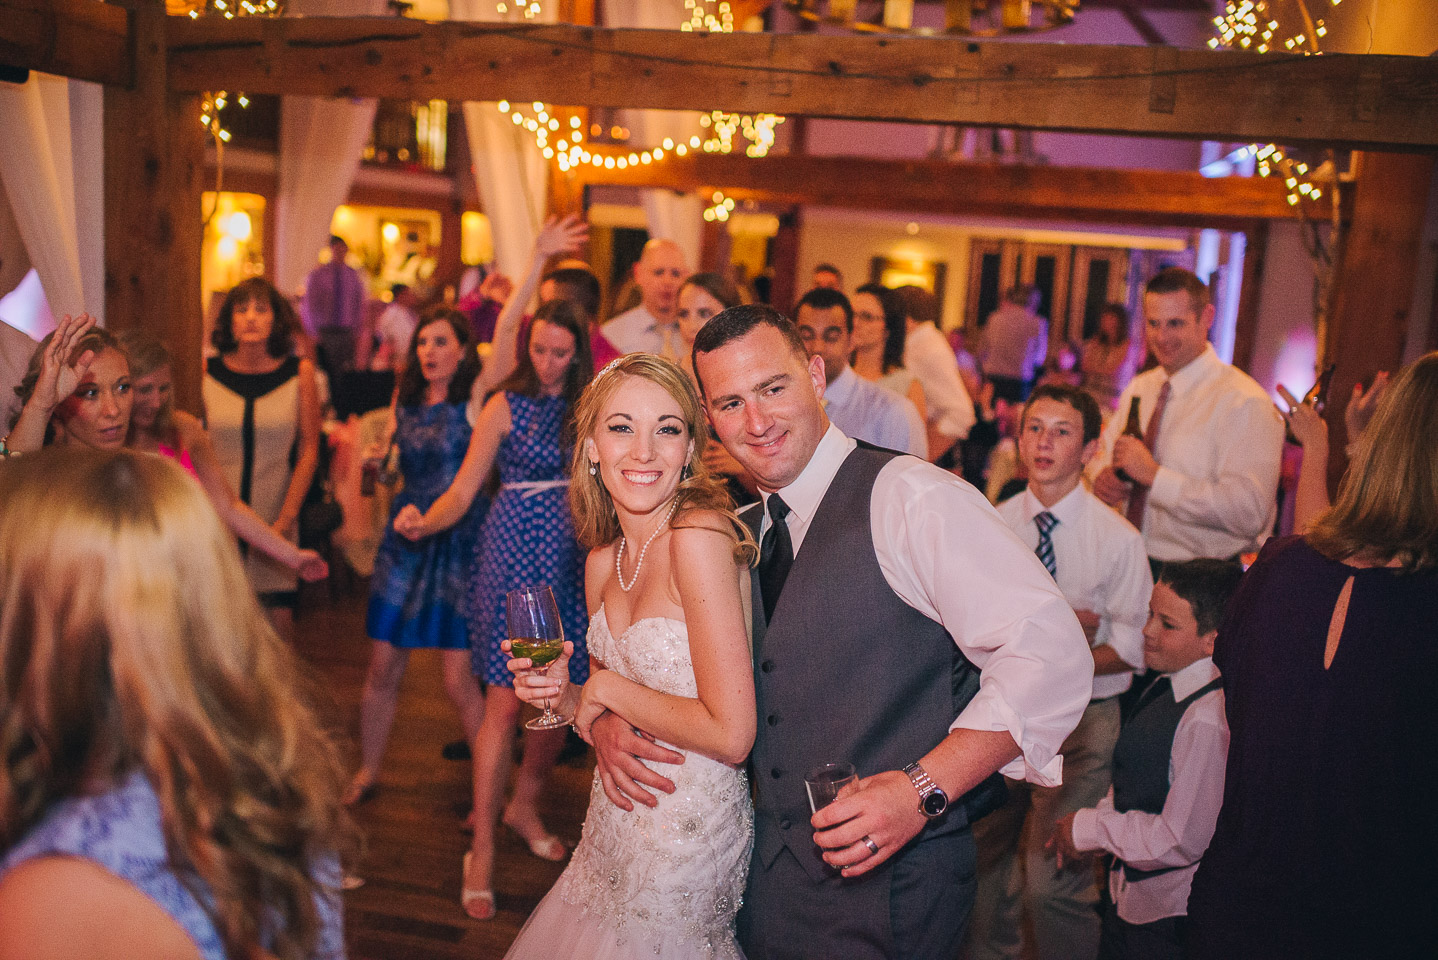 NH Wedding Photographer: bride and groom dancing with guests